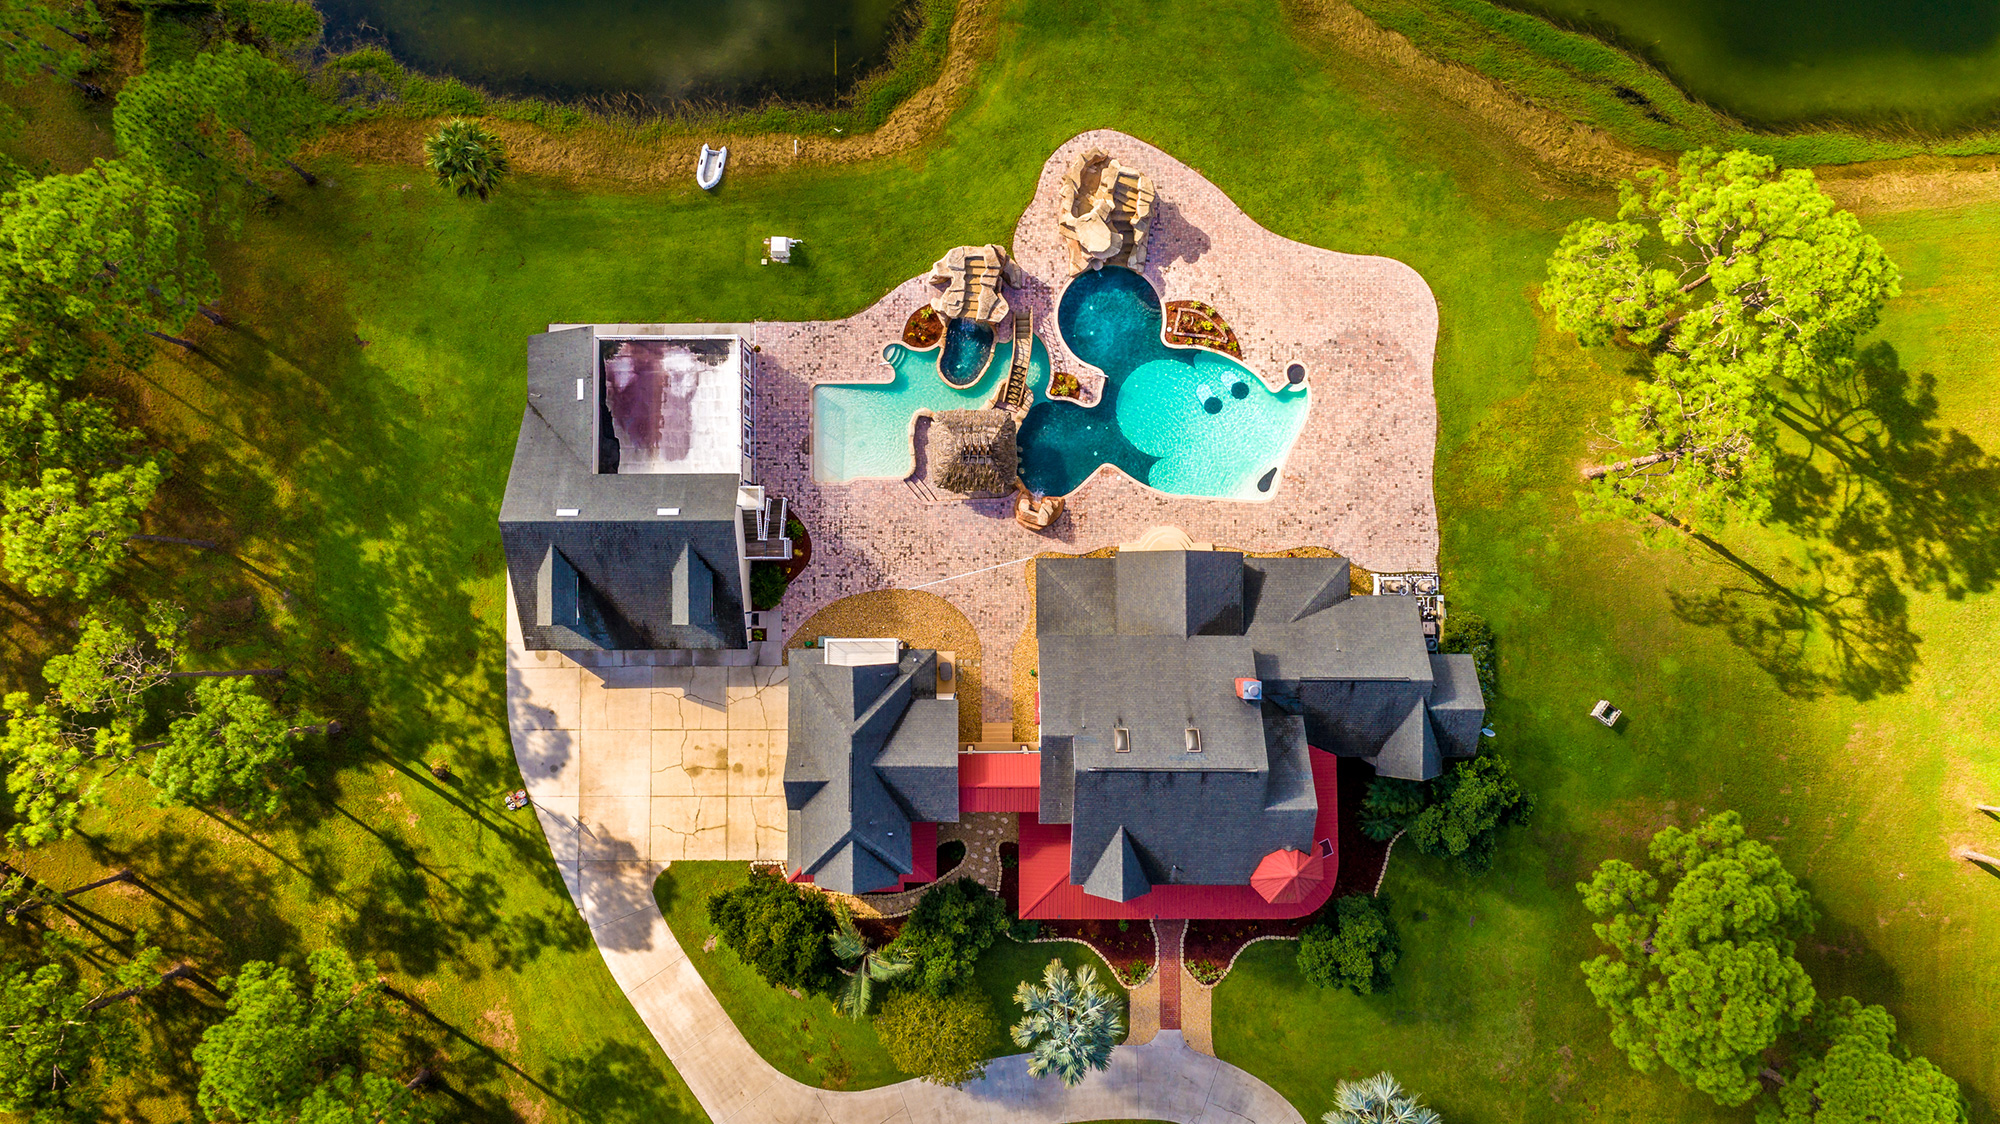 Disney Lovers' Florida House with Two Mickey Mouse–Shaped Pools Hits the Market for $850K disney-house-overview-backyard